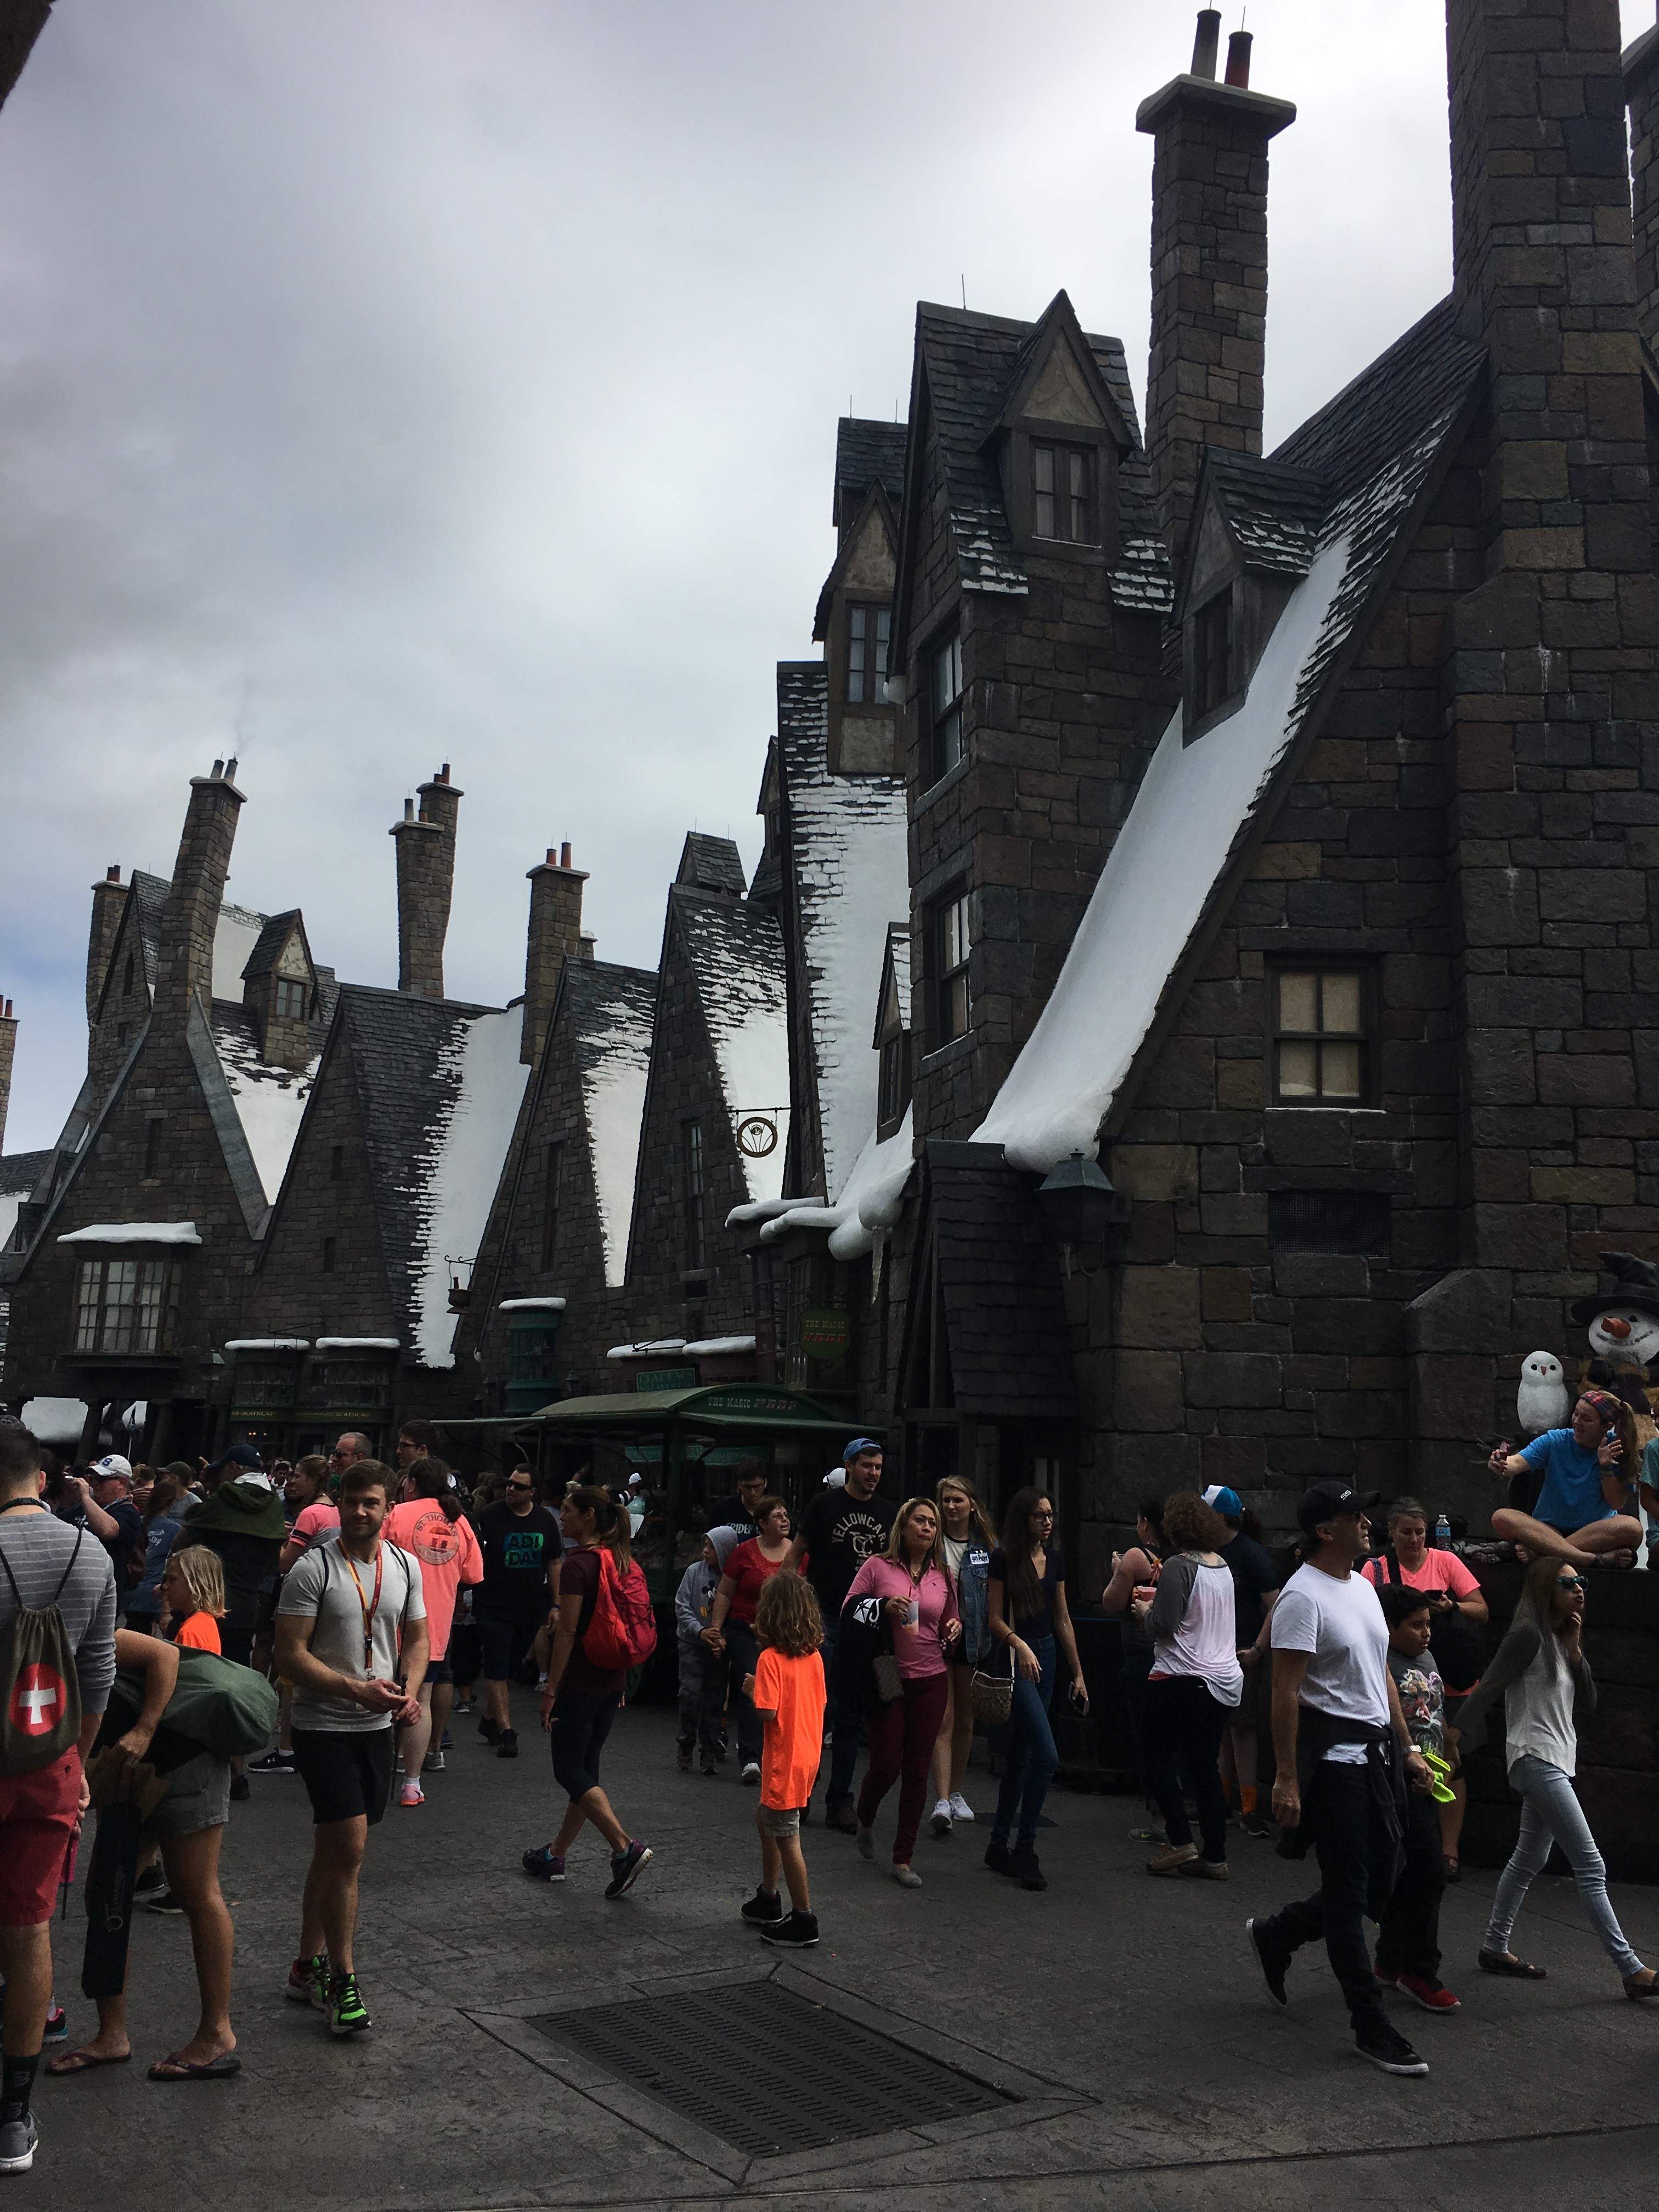 Hogsmeade Villiage